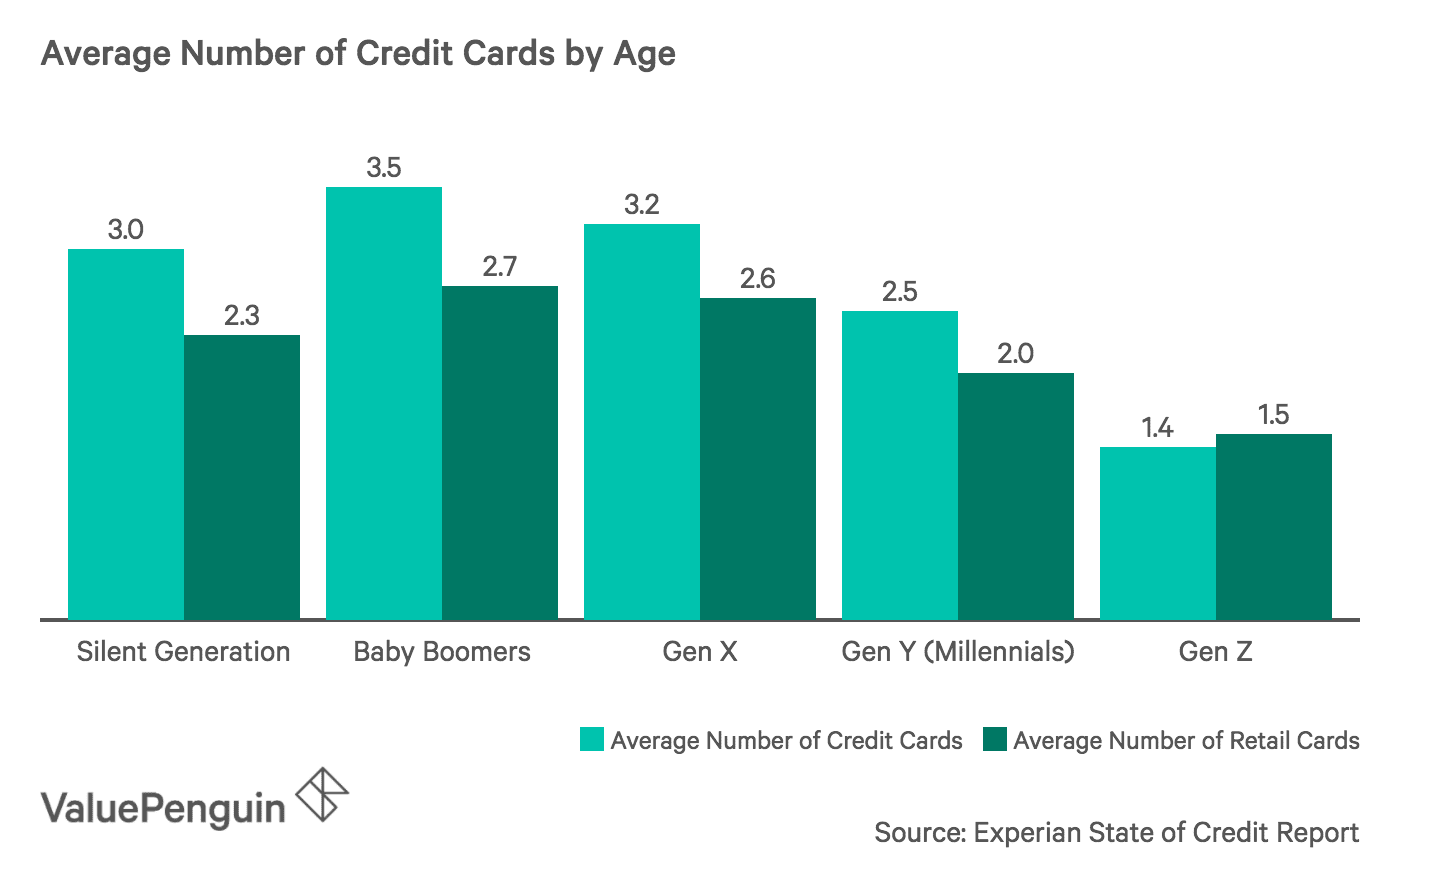 Average Number of Credit Cards by Age